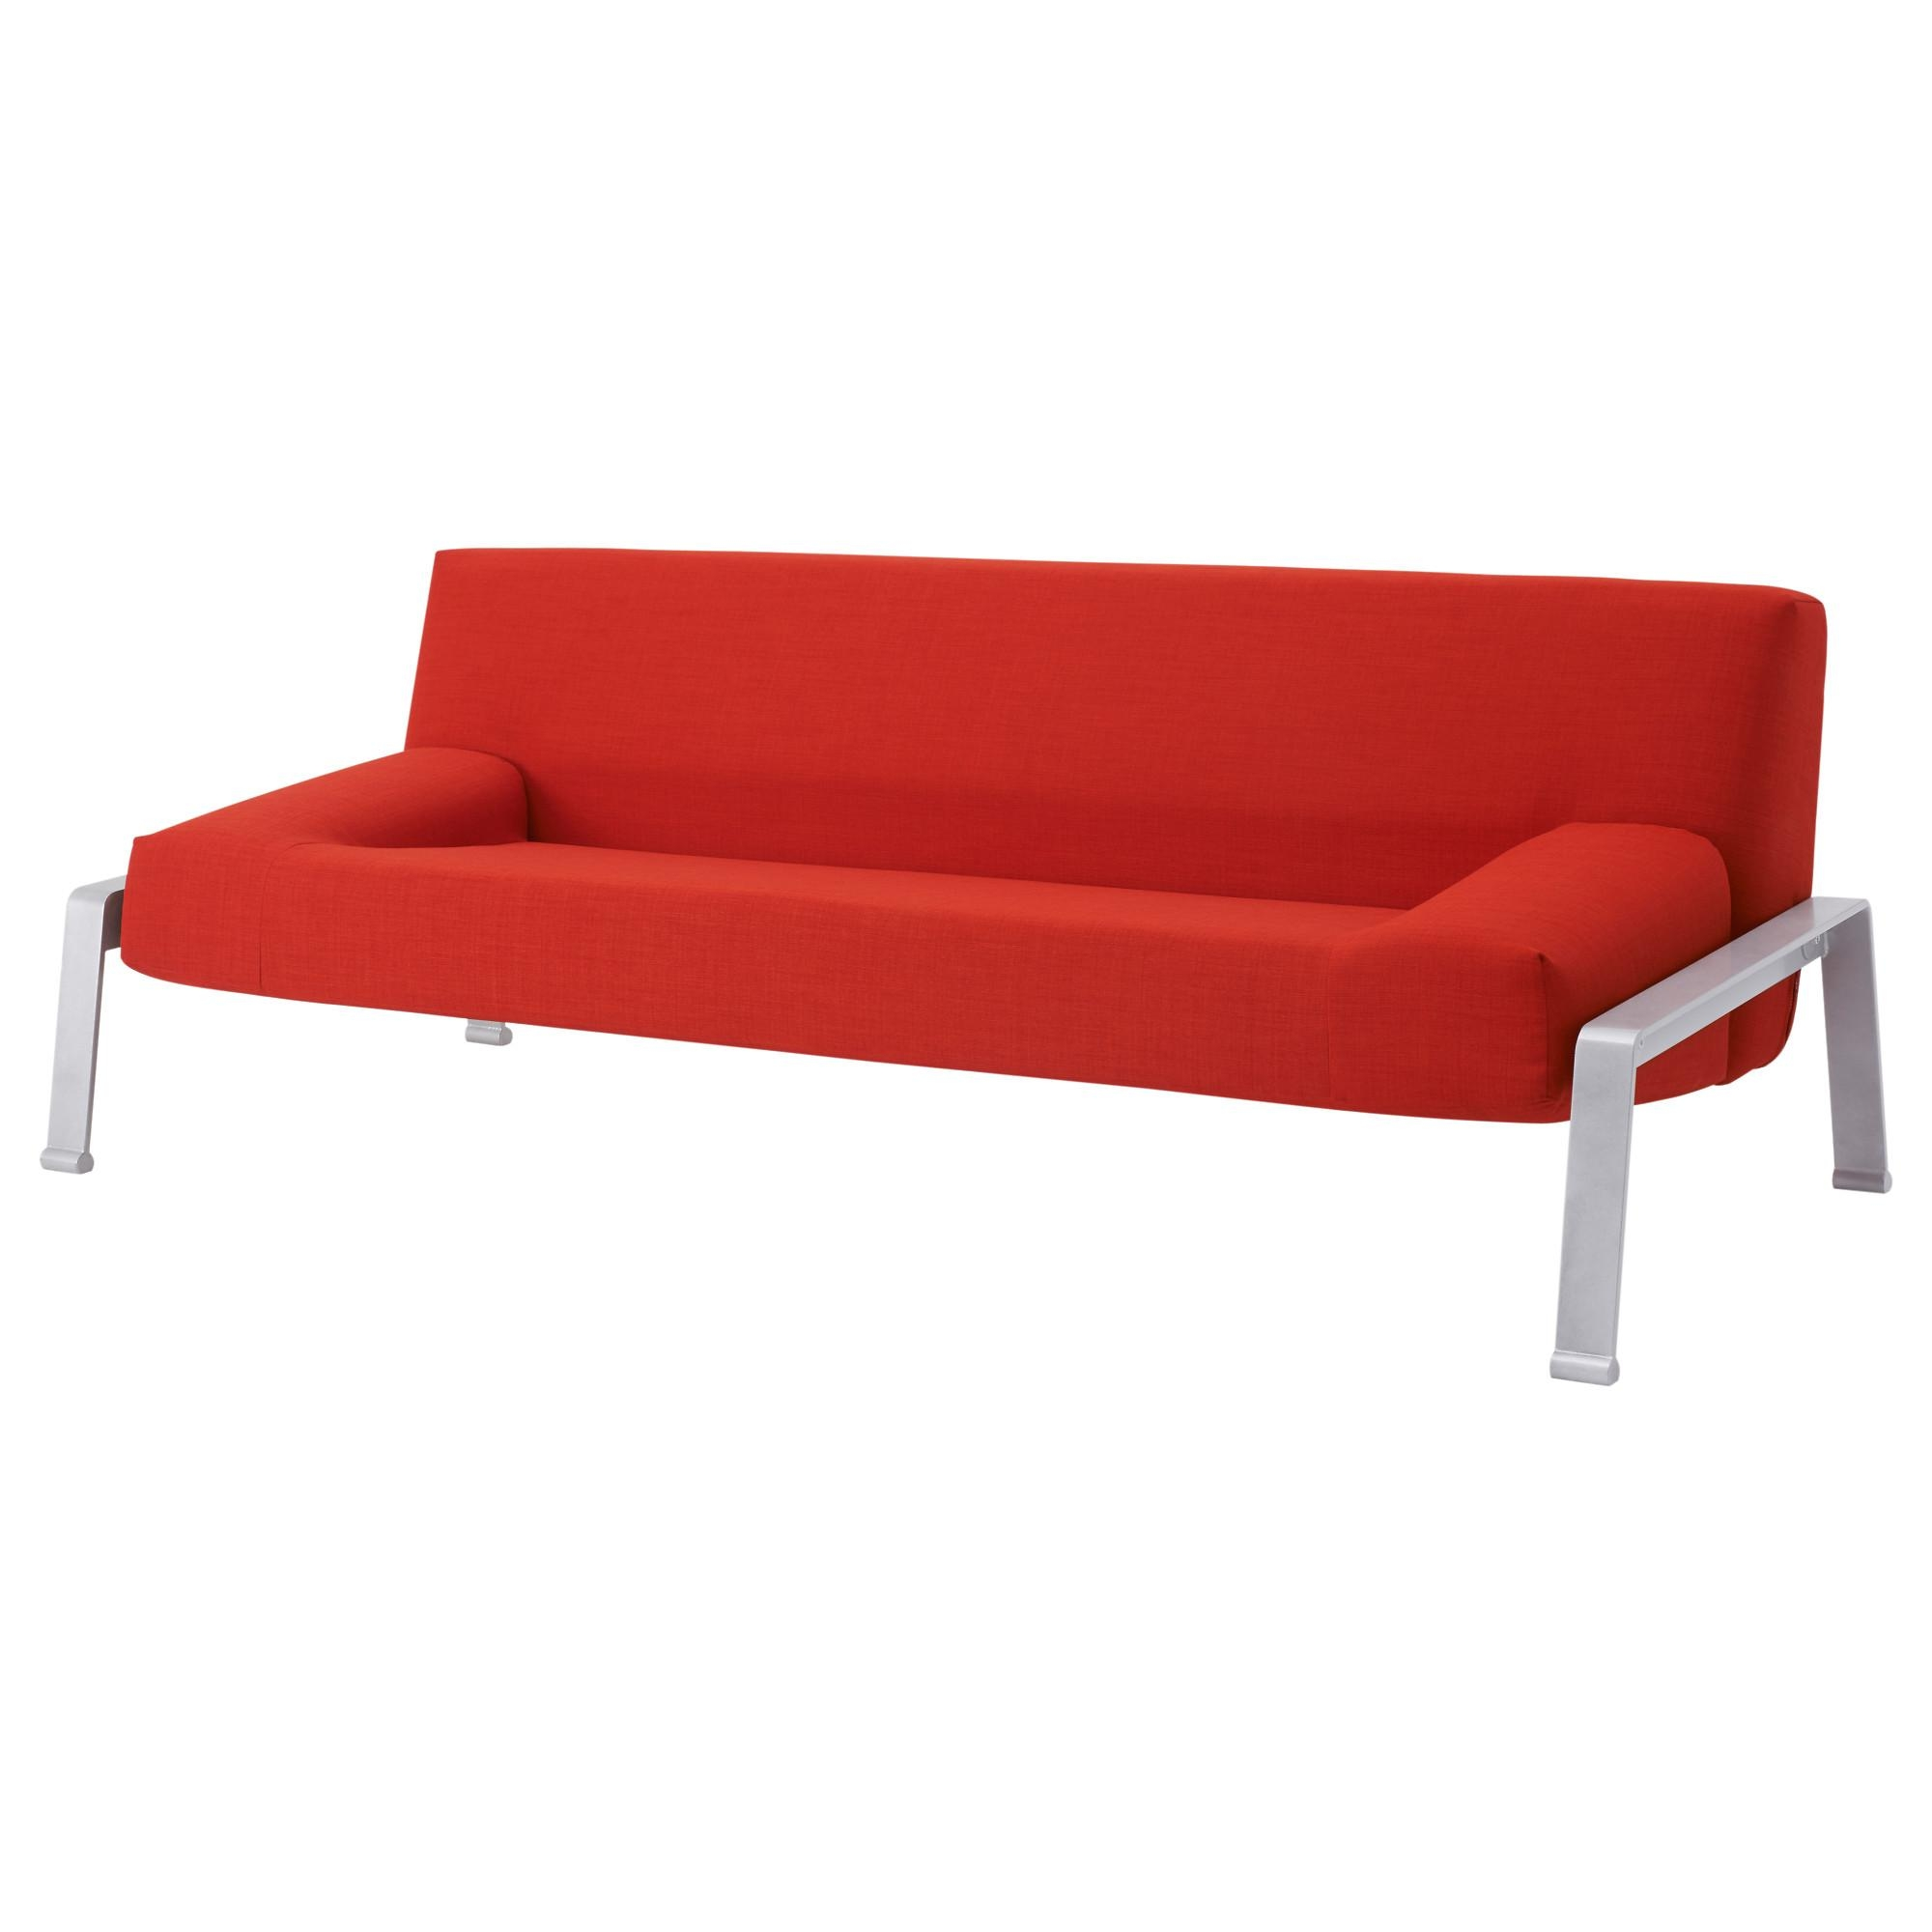 Sofa Beds & Futons – Ikea Throughout Red Sectional Sleeper Sofas (Image 19 of 22)